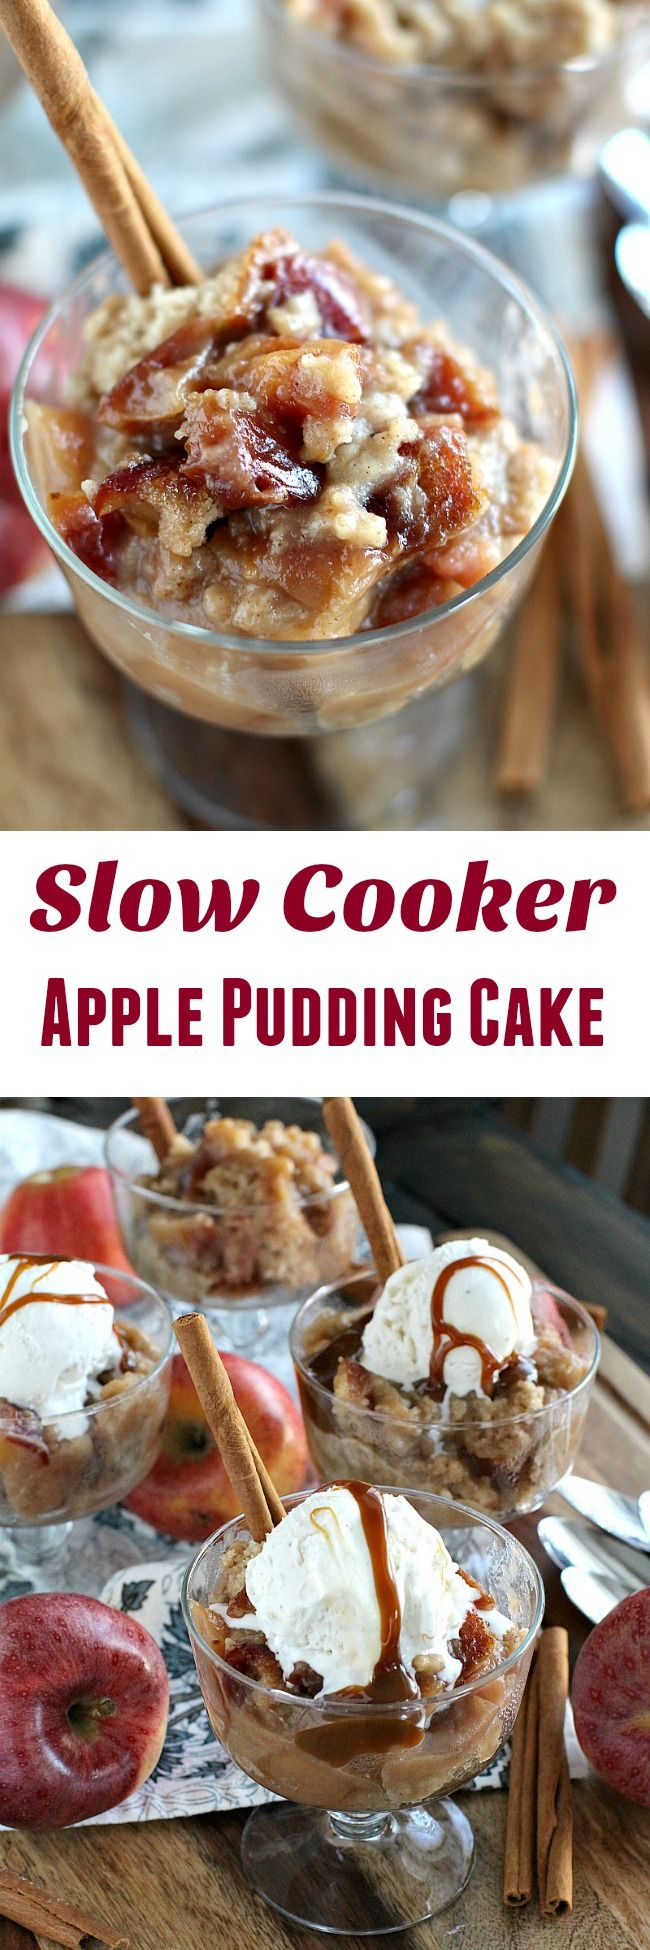 Slow Cooker Apple Pudding Cake Is Easy To Make Loaded